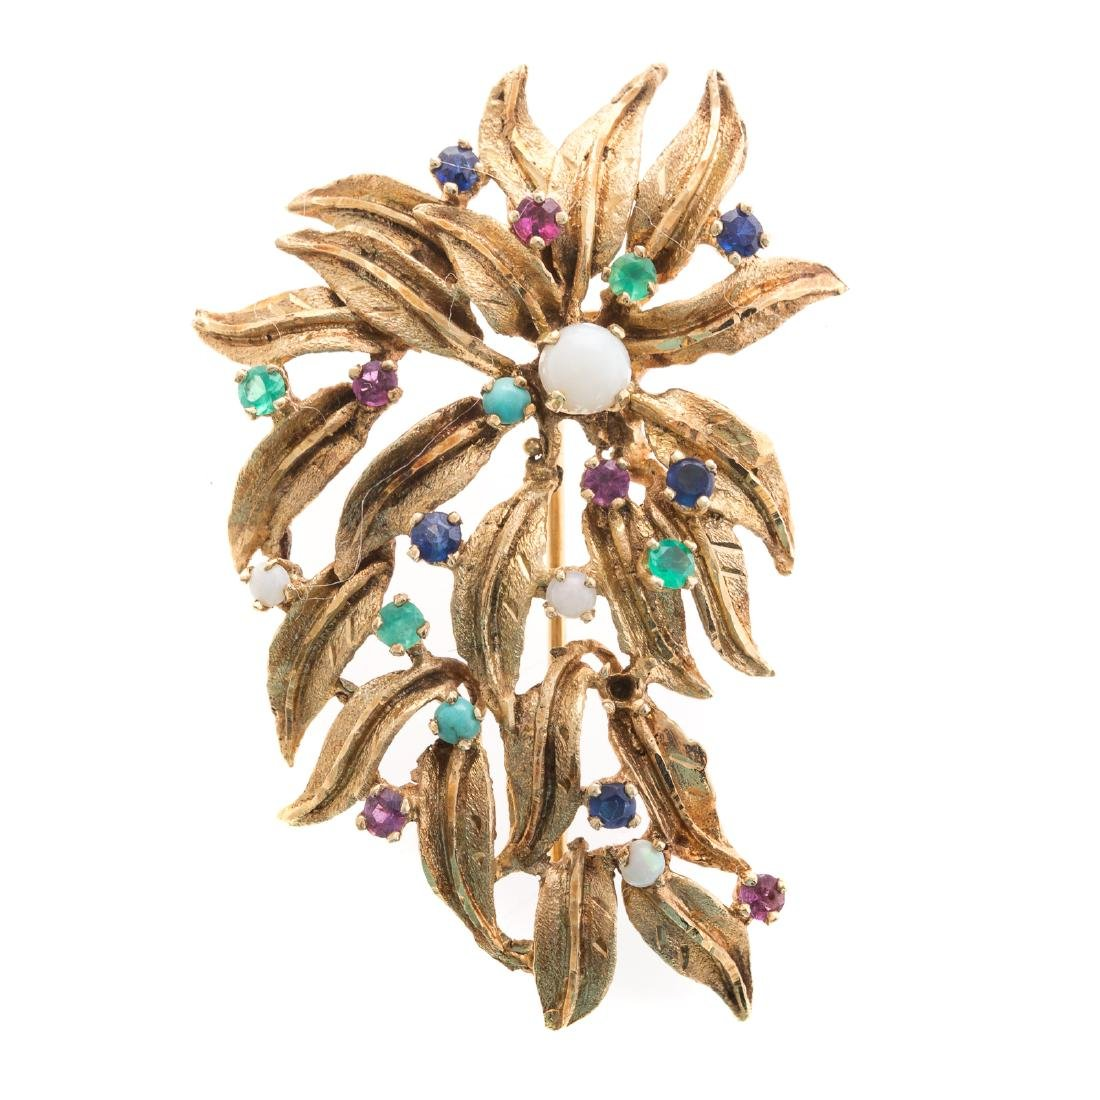 A Lady's Gemstone Brooch in 14K Gold